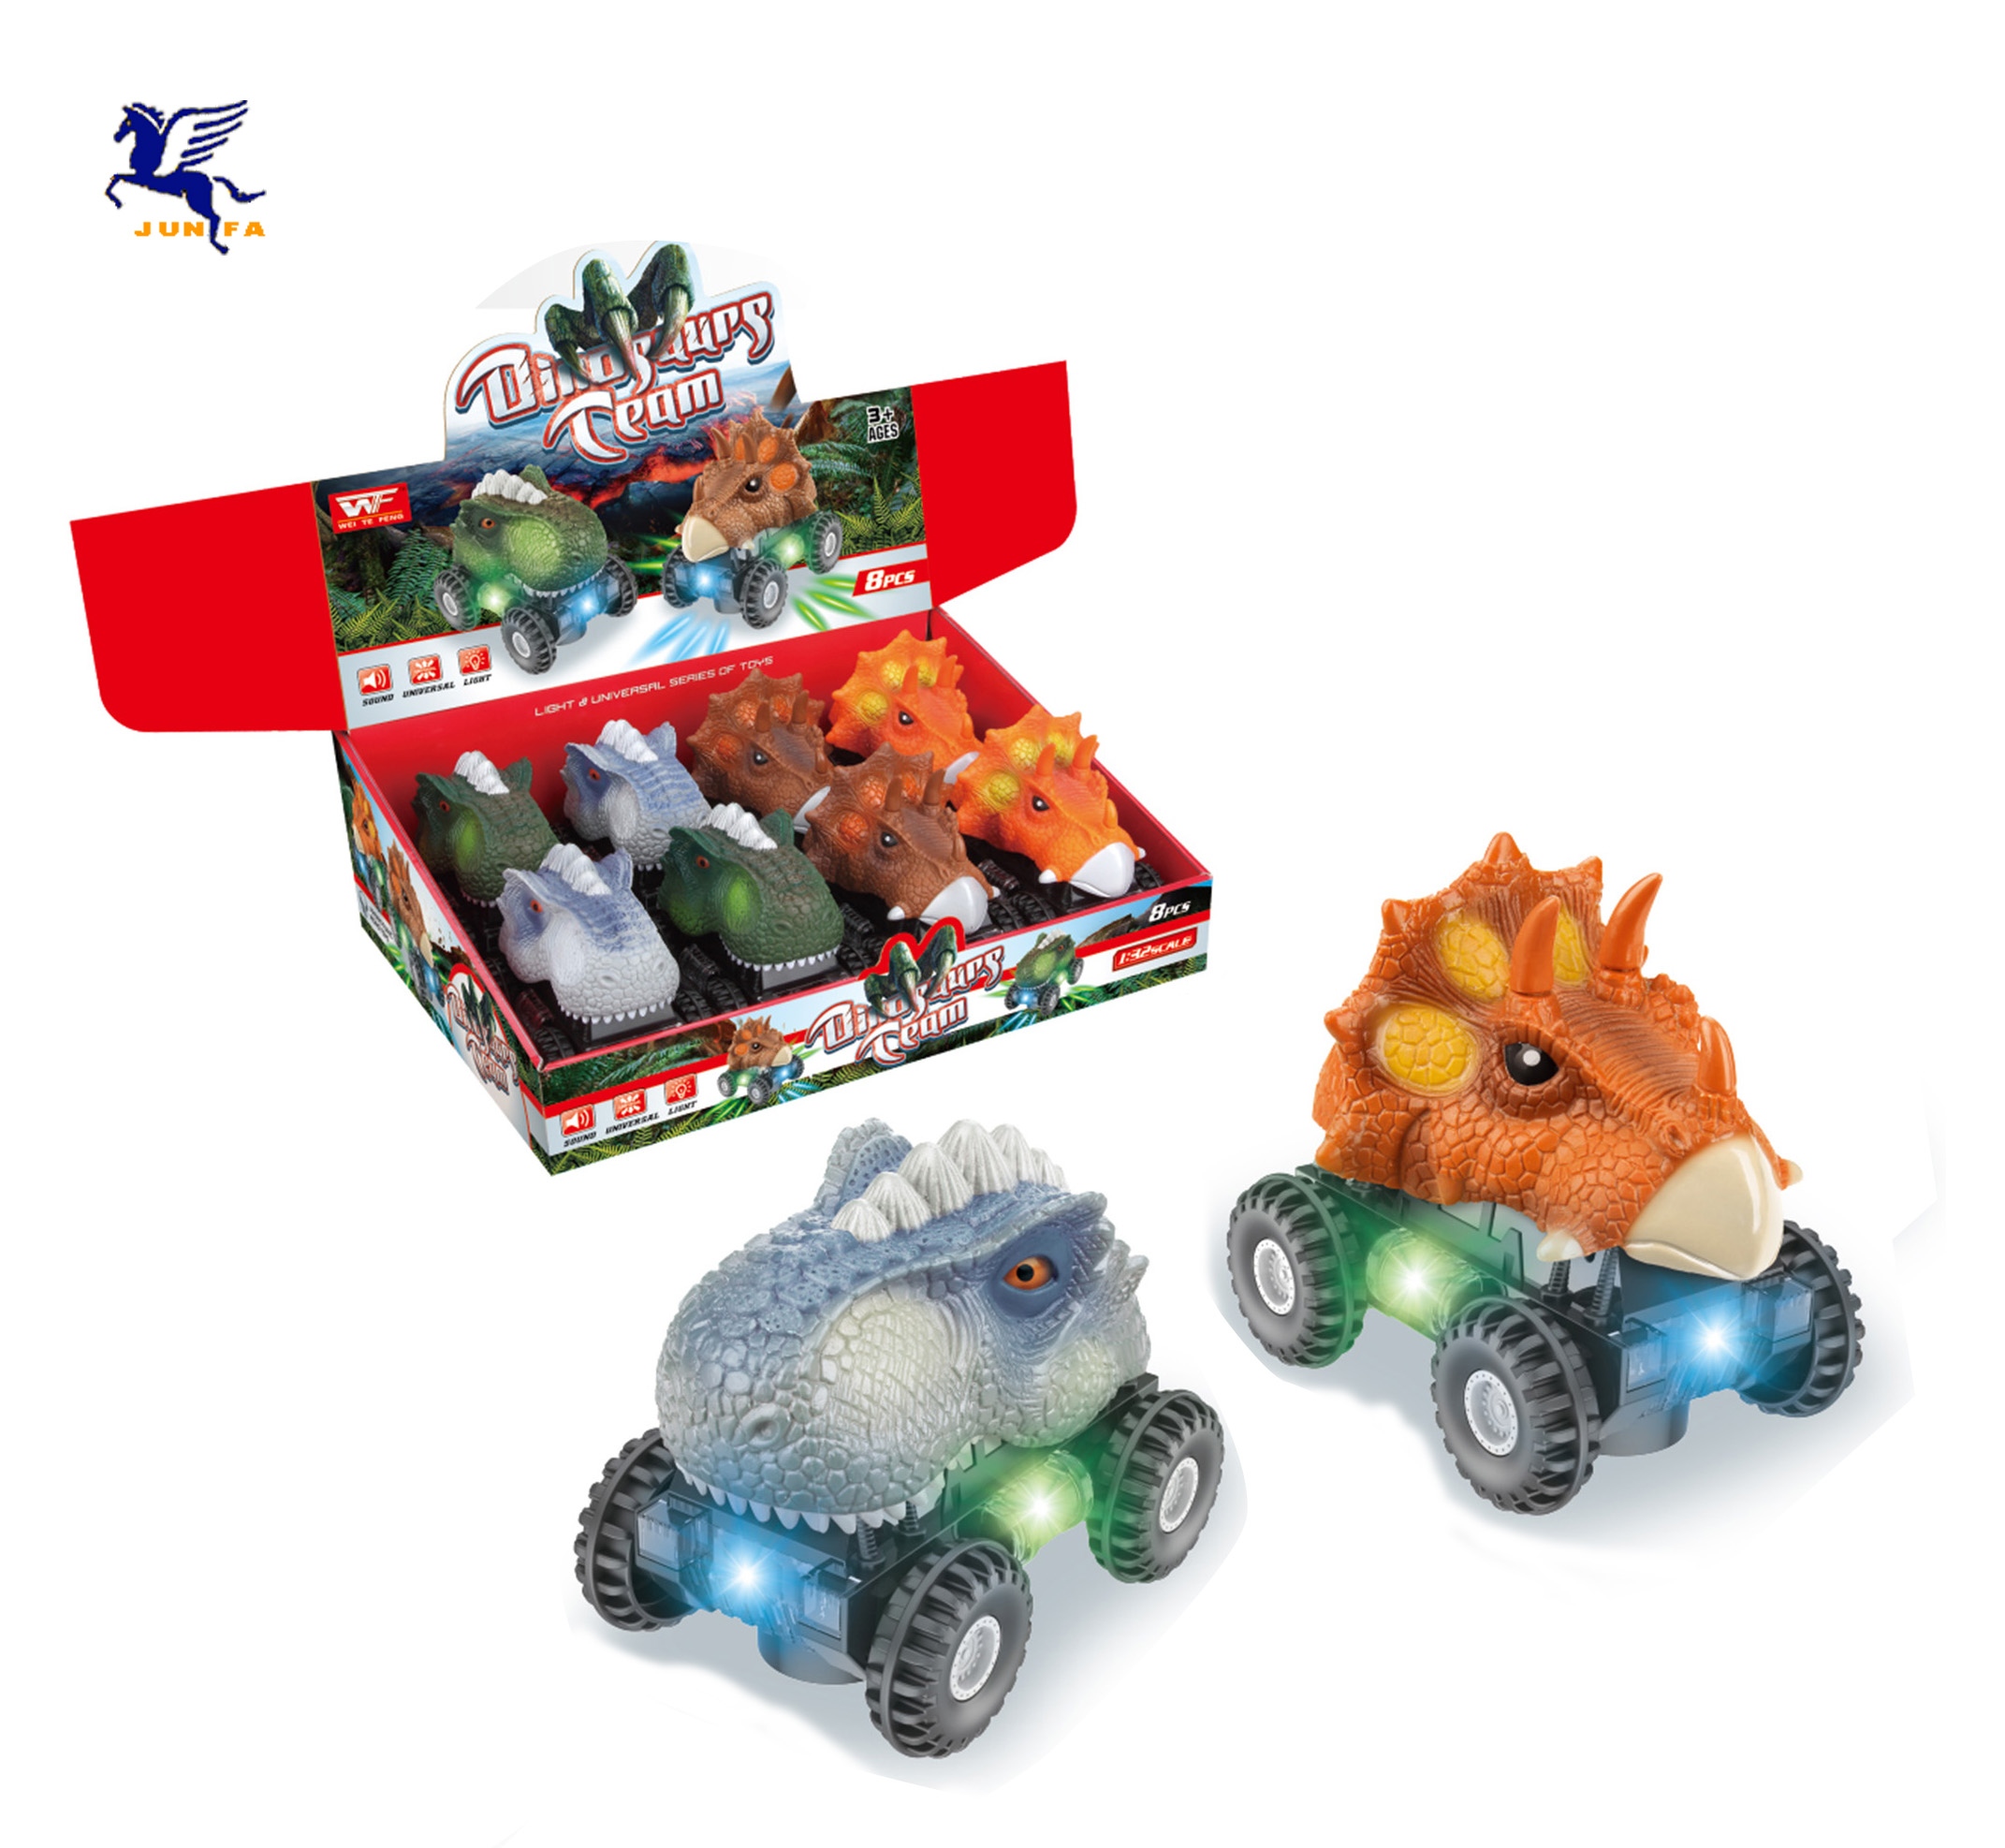 B/O Universal dinosaur Battery operated toy series <strong>W</strong>/light &amp; music